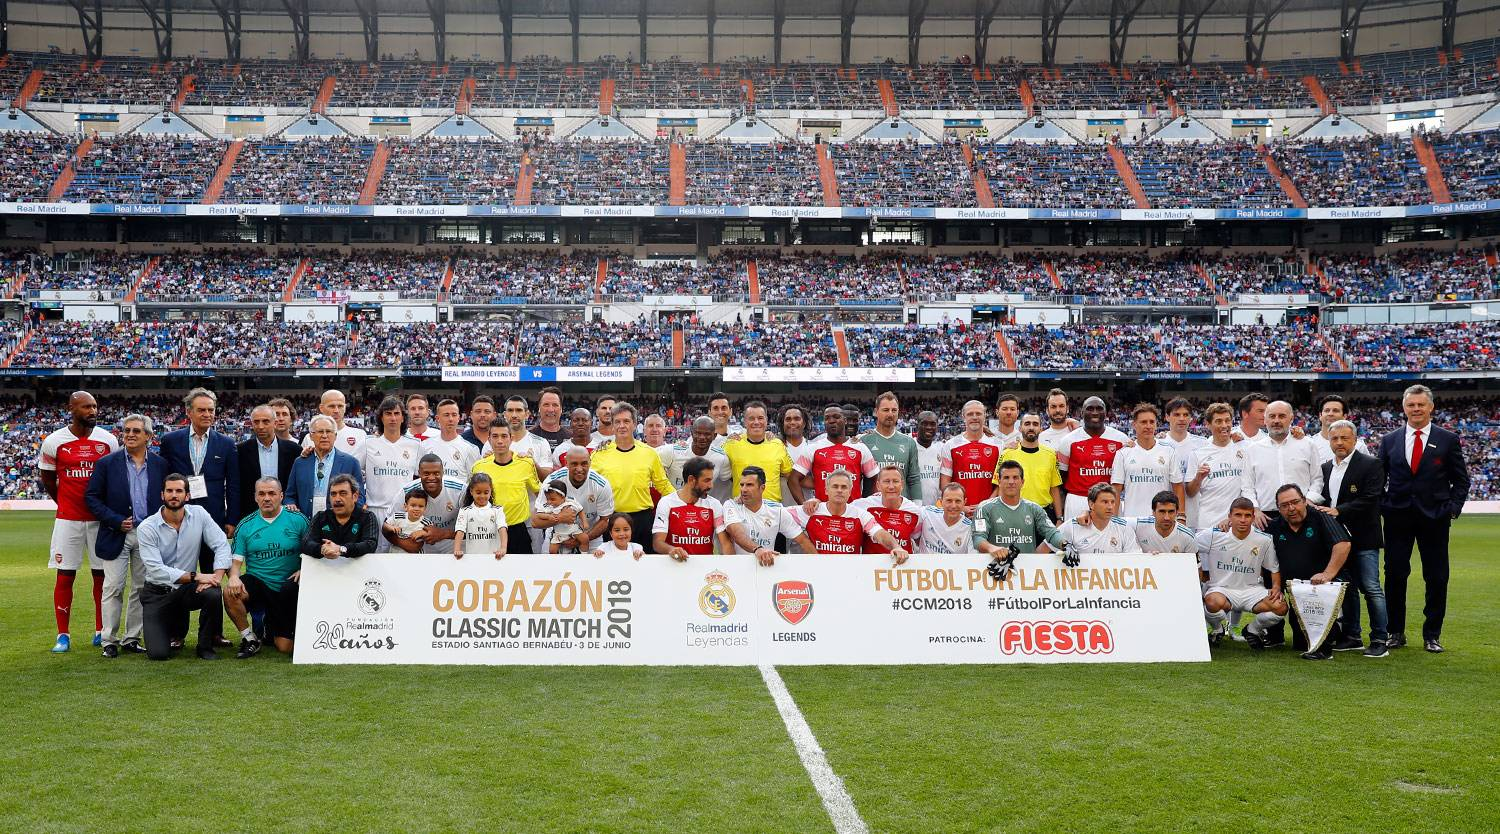 Real Madrid - Real Madrid Leyendas - Arsenal Legends - 03-06-2018